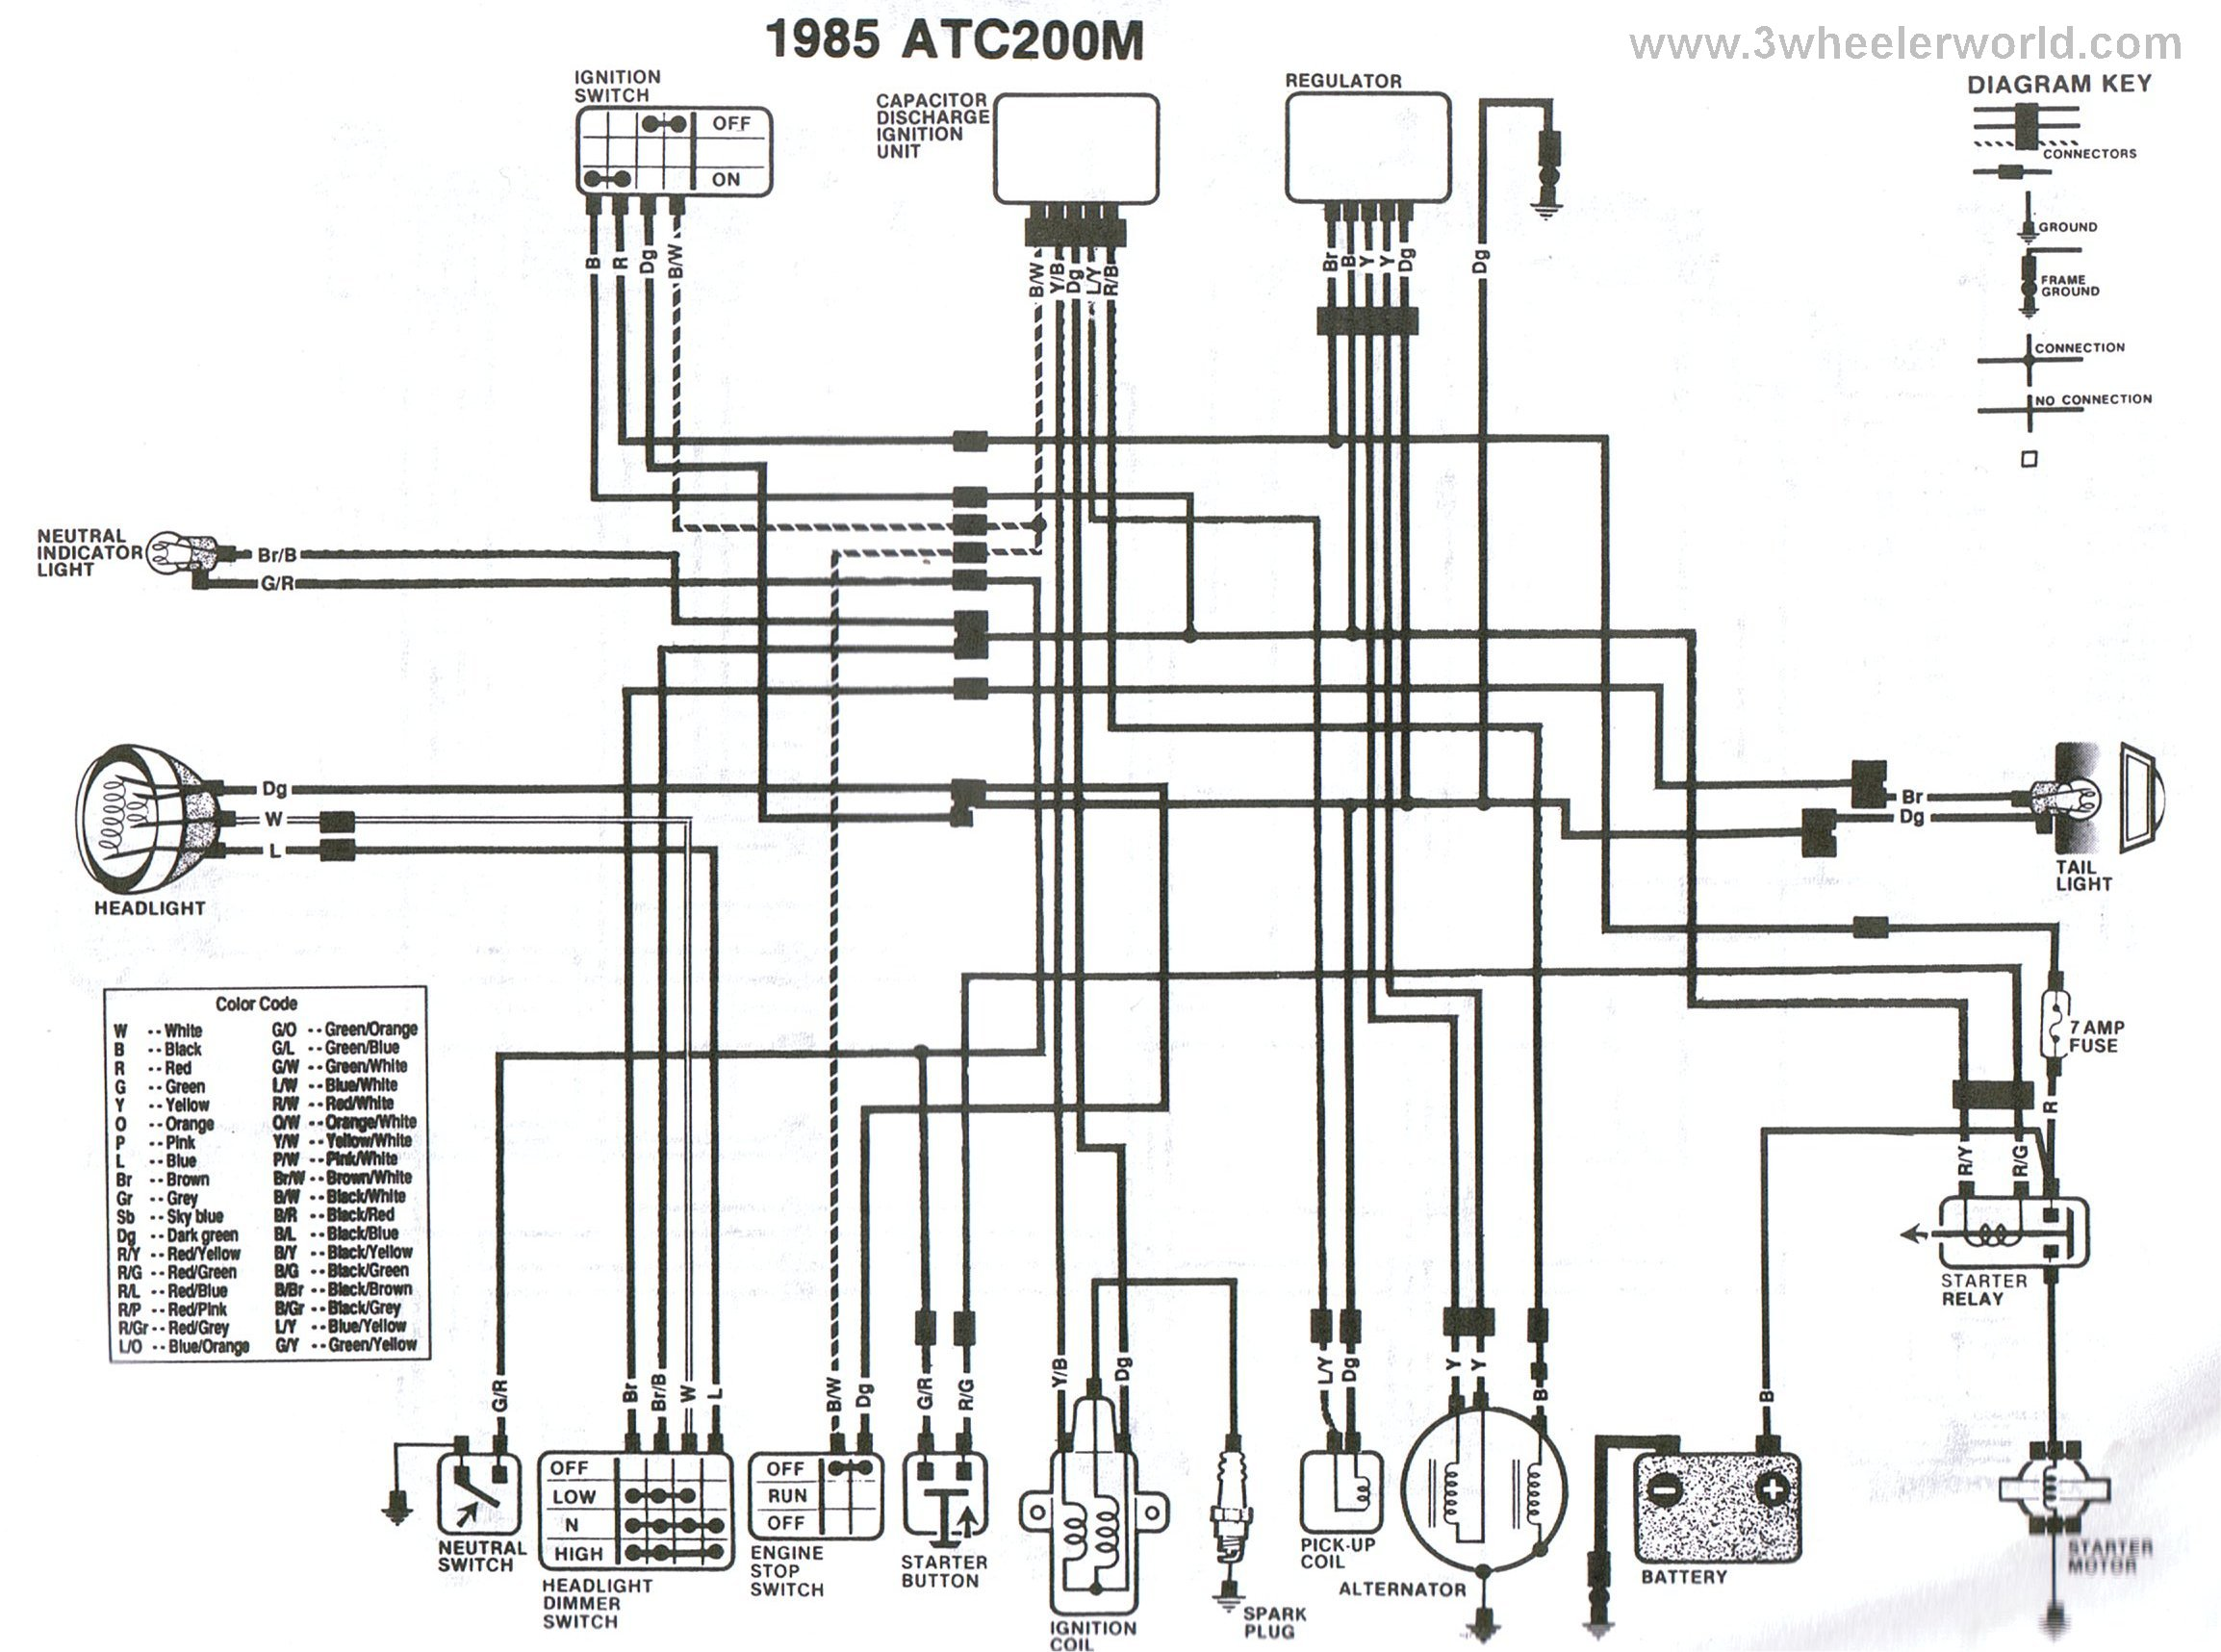 Wiring Diagram 1985 Honda Big Red Experts Of Yamaha Qt 50 3 Wheeler World Tech Help Diagrams Rh 3wheelerworld Com 1986 Atv